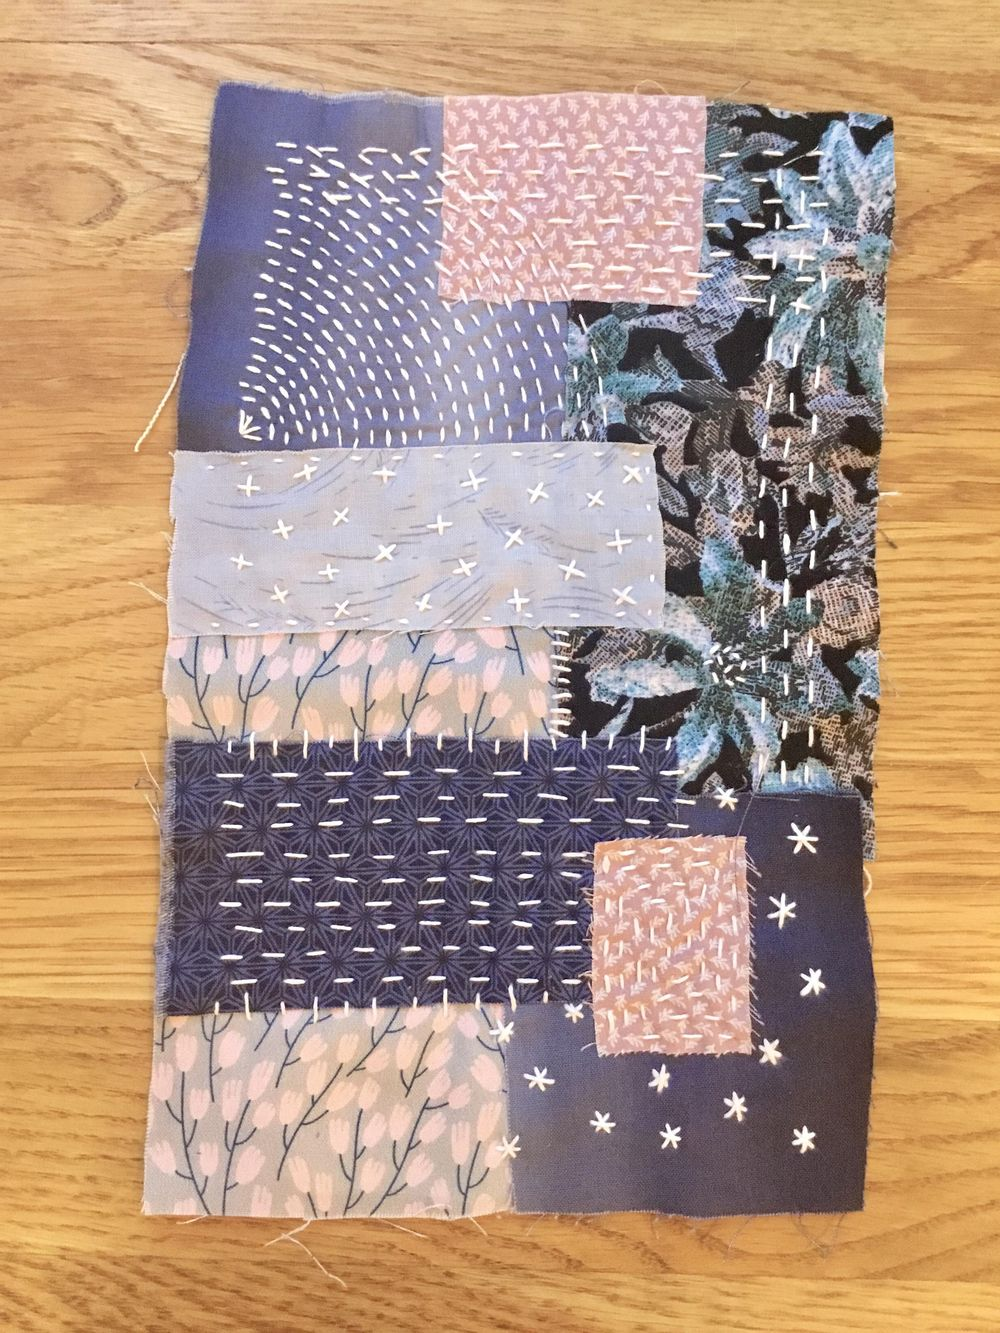 My First Boro Stitching Project - image 3 - student project